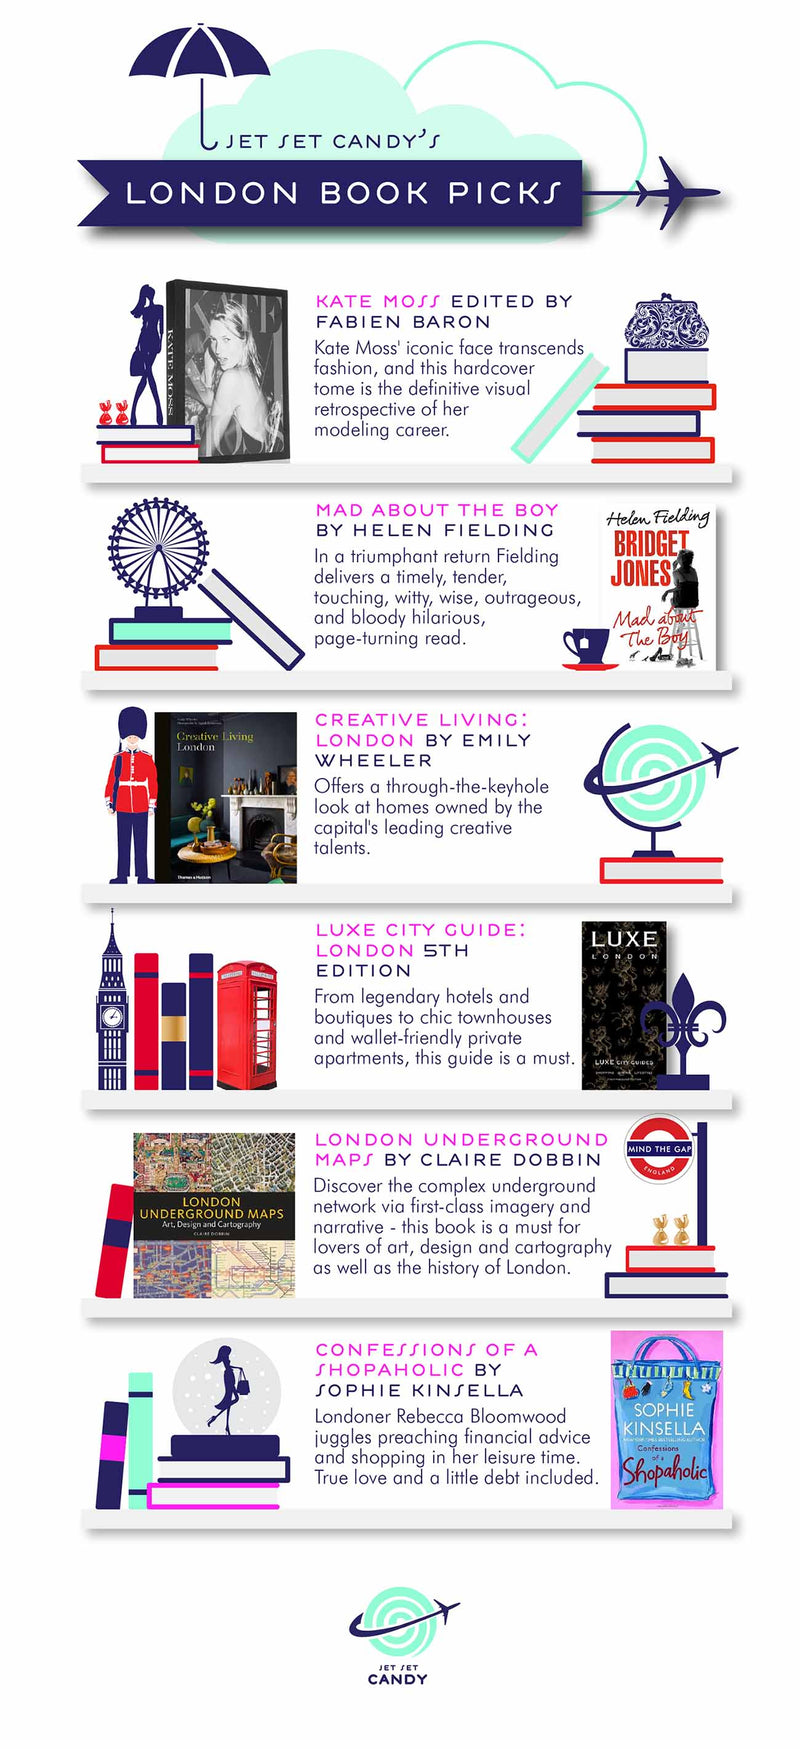 LONDON BOOK PICKS